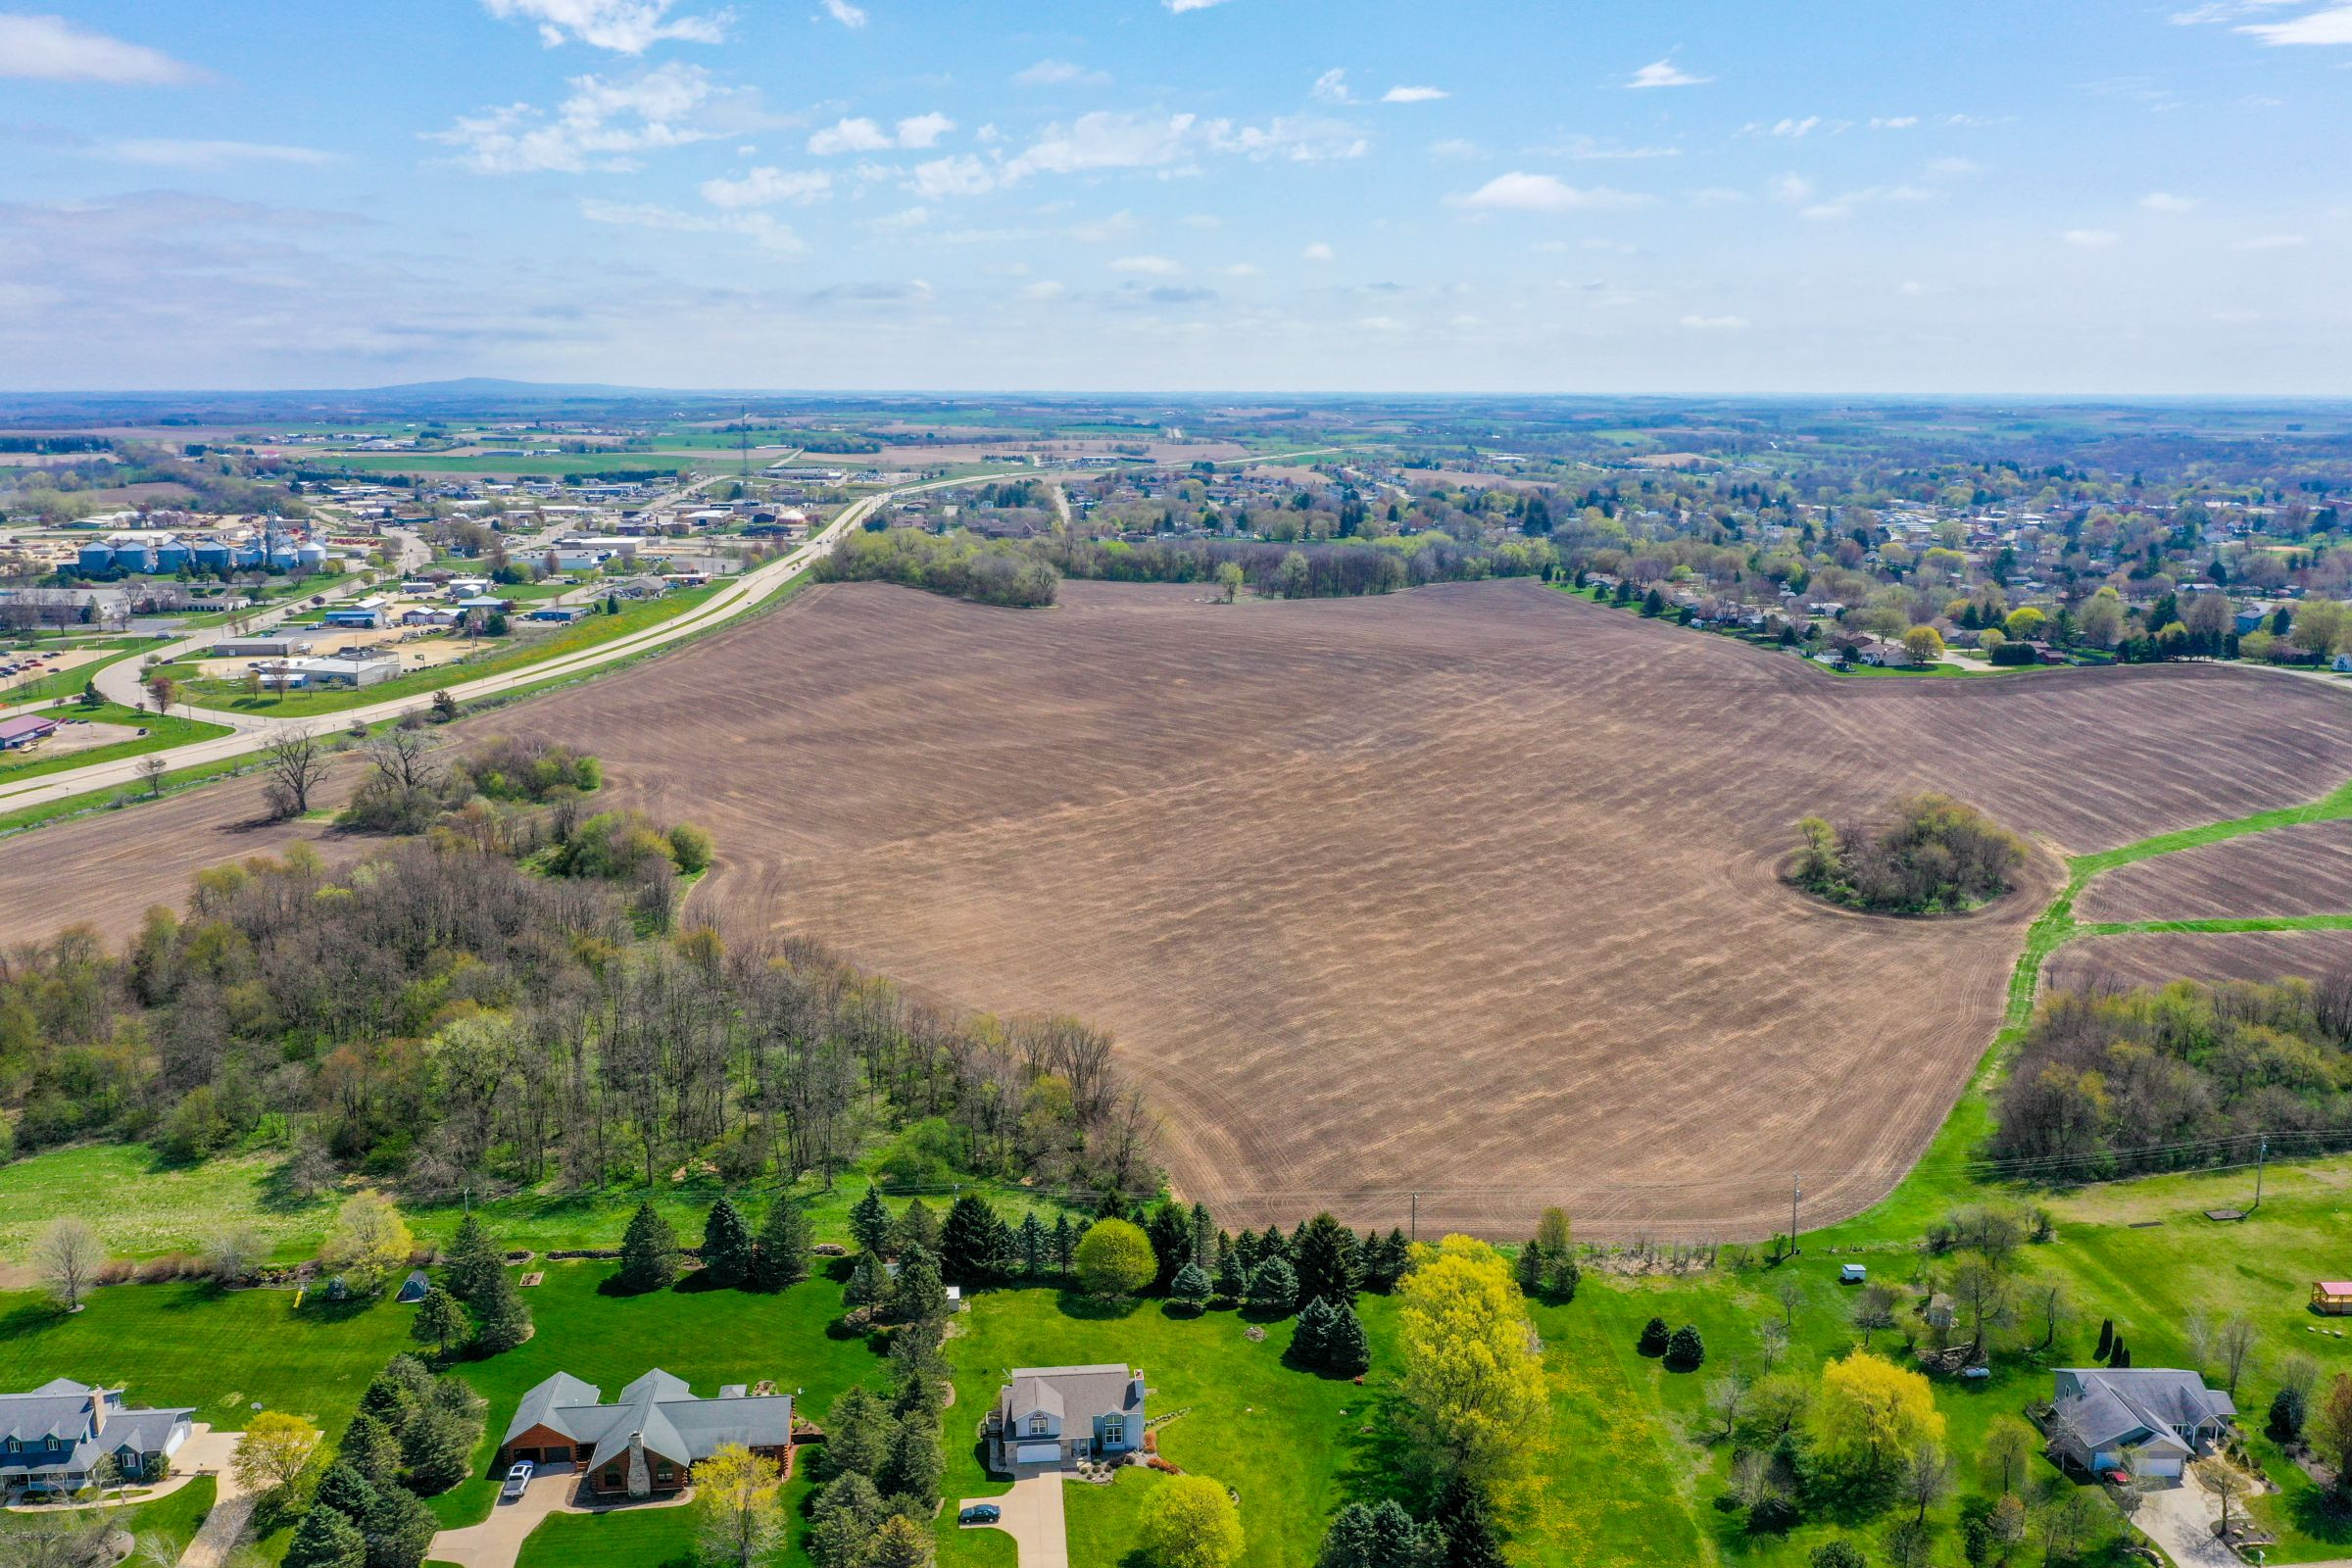 development-land-commercial-iowa-county-wisconsin-152-acres-listing-number-15474-3-2021-05-18-161418.jpg